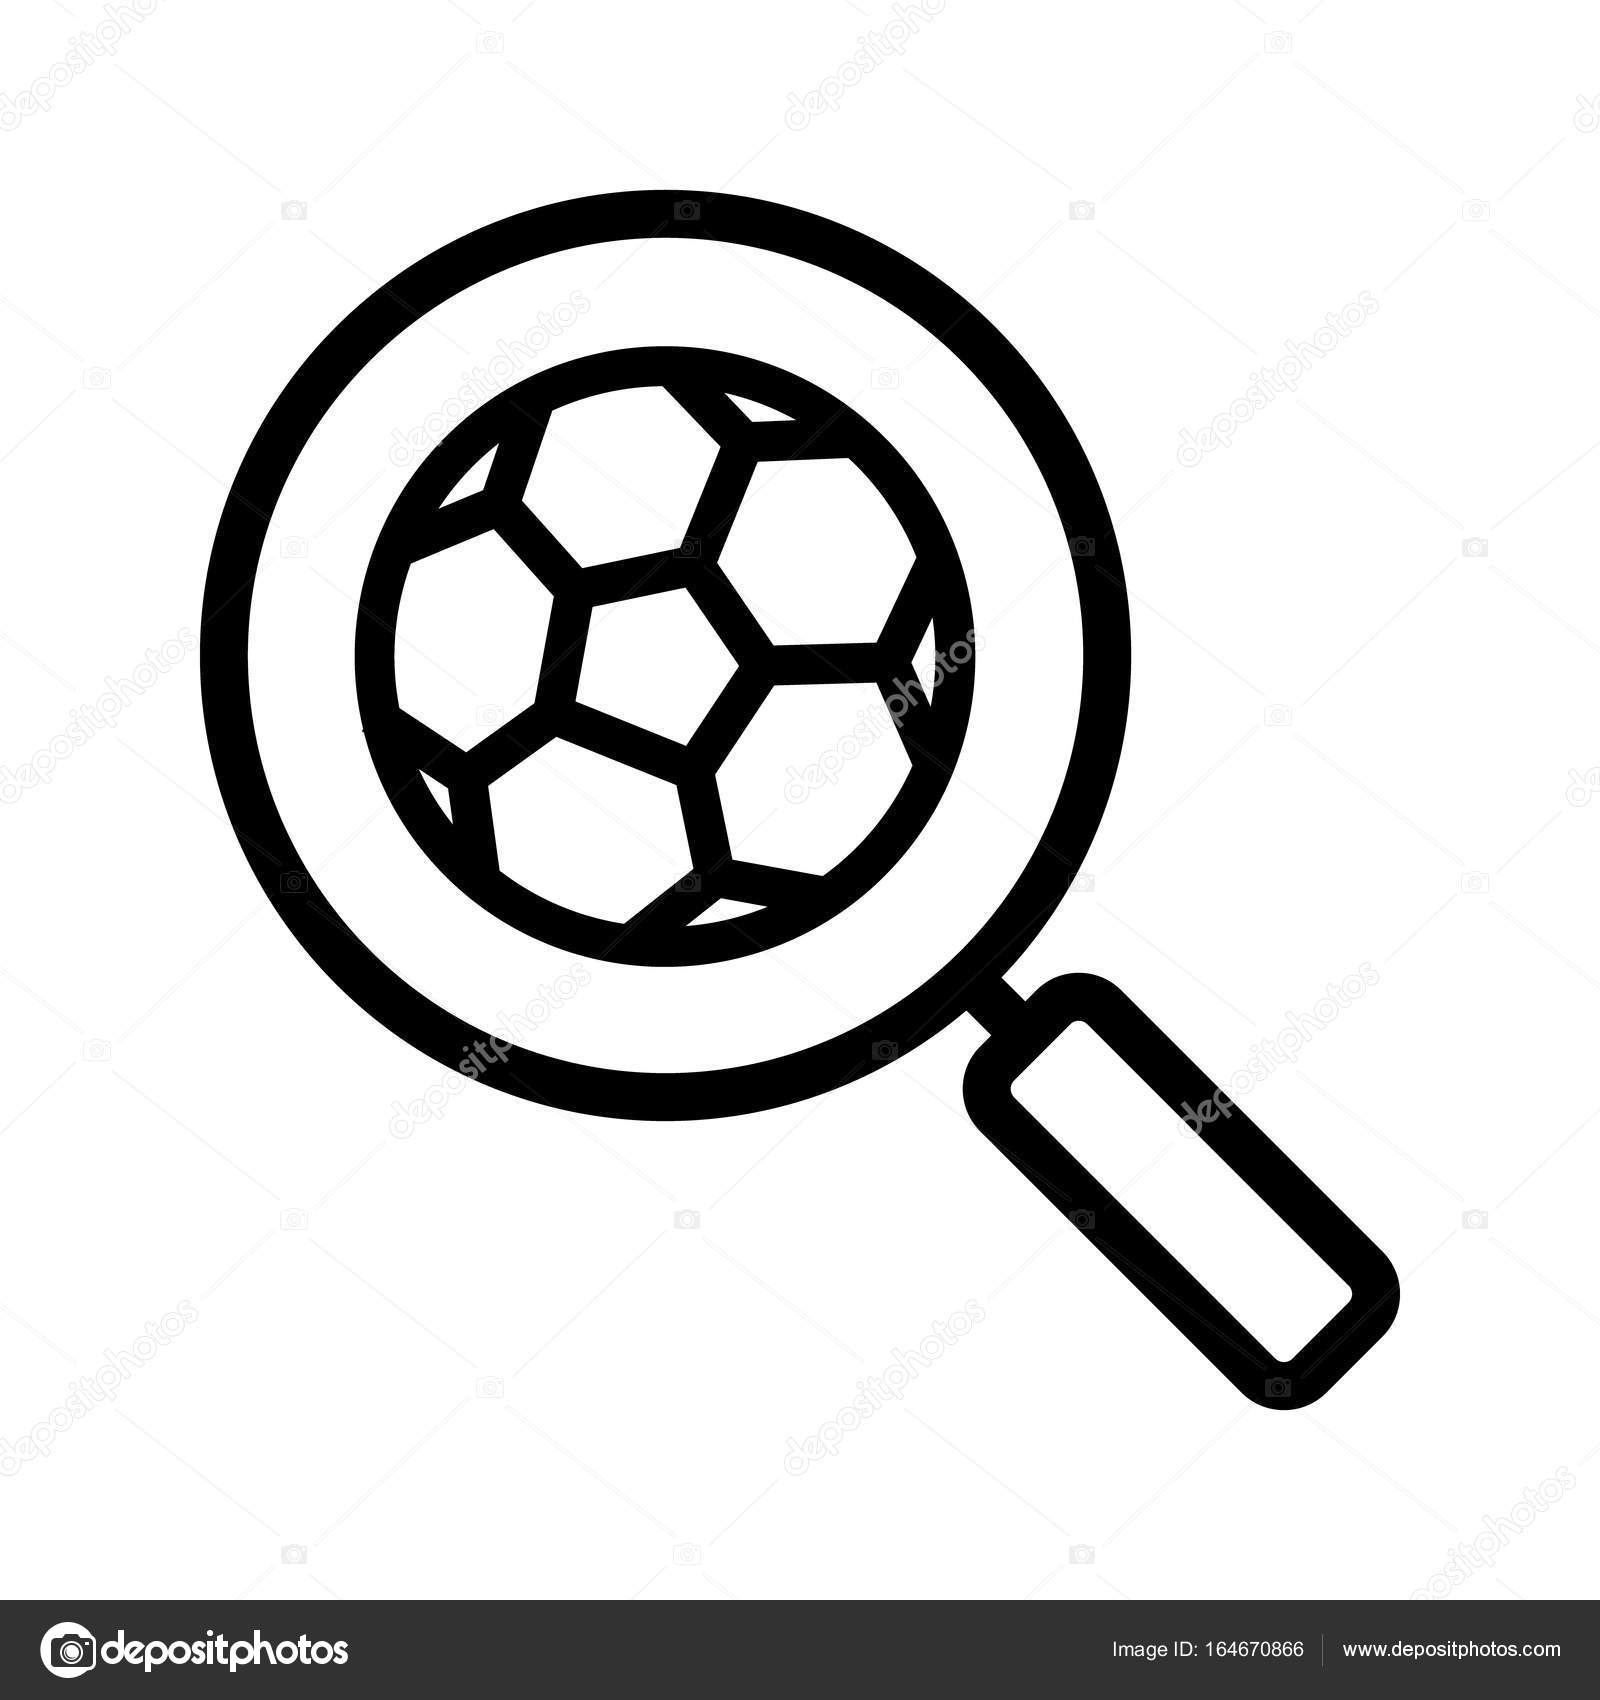 1600x1700 Magnifying Glass With Soccer Ball Icon Stock Vector Bsd